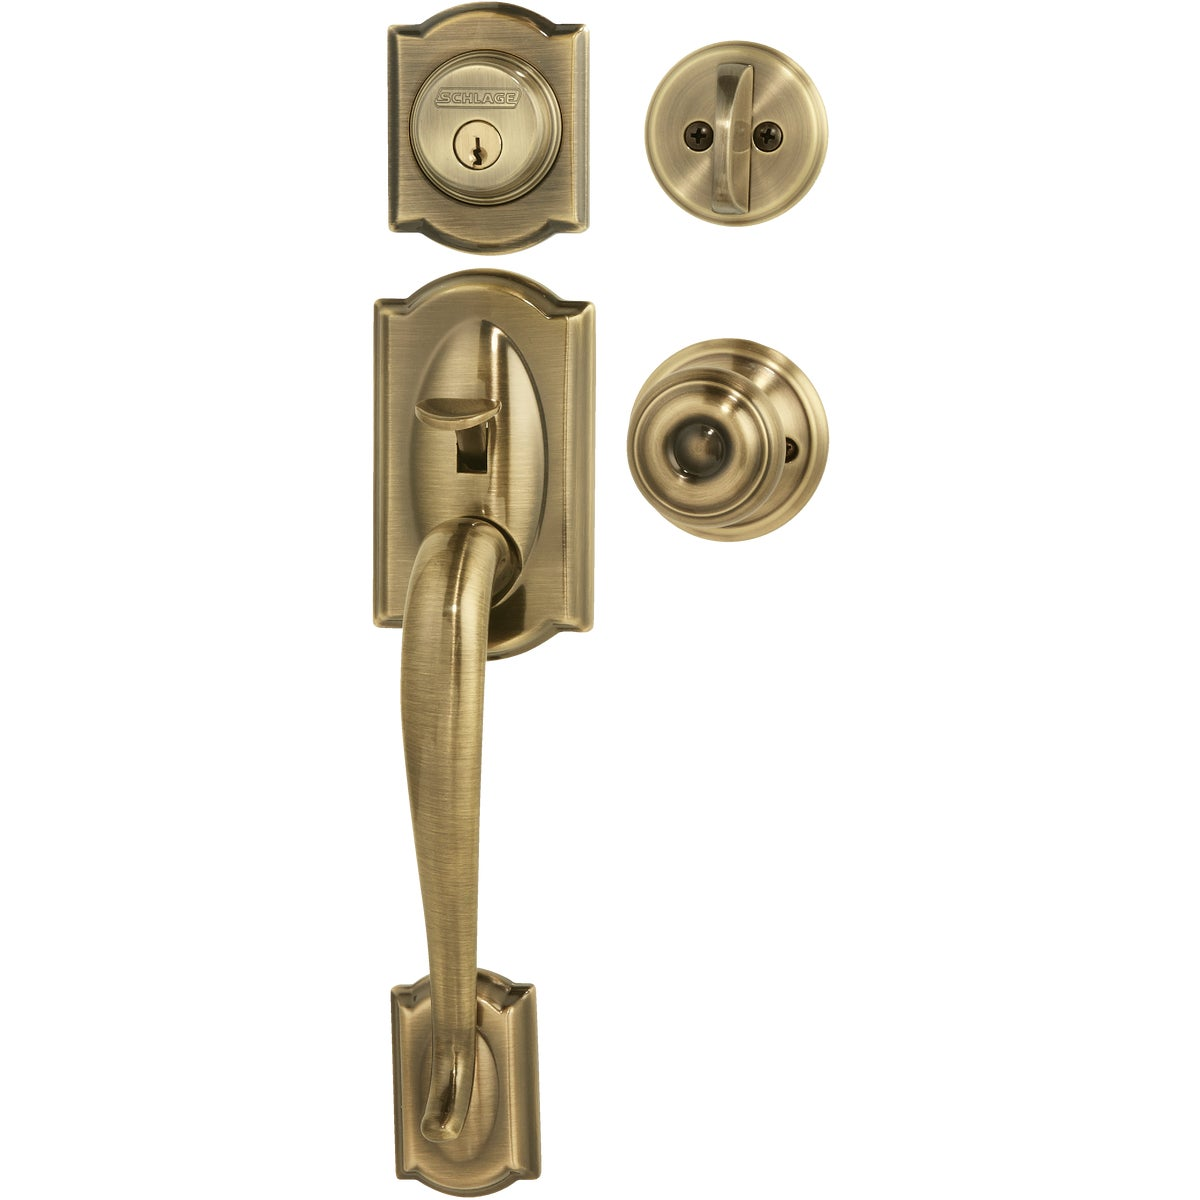 Item 241937, Camelot handleset with Georgian interior knob features an adjustable through-bolt for easy installation.